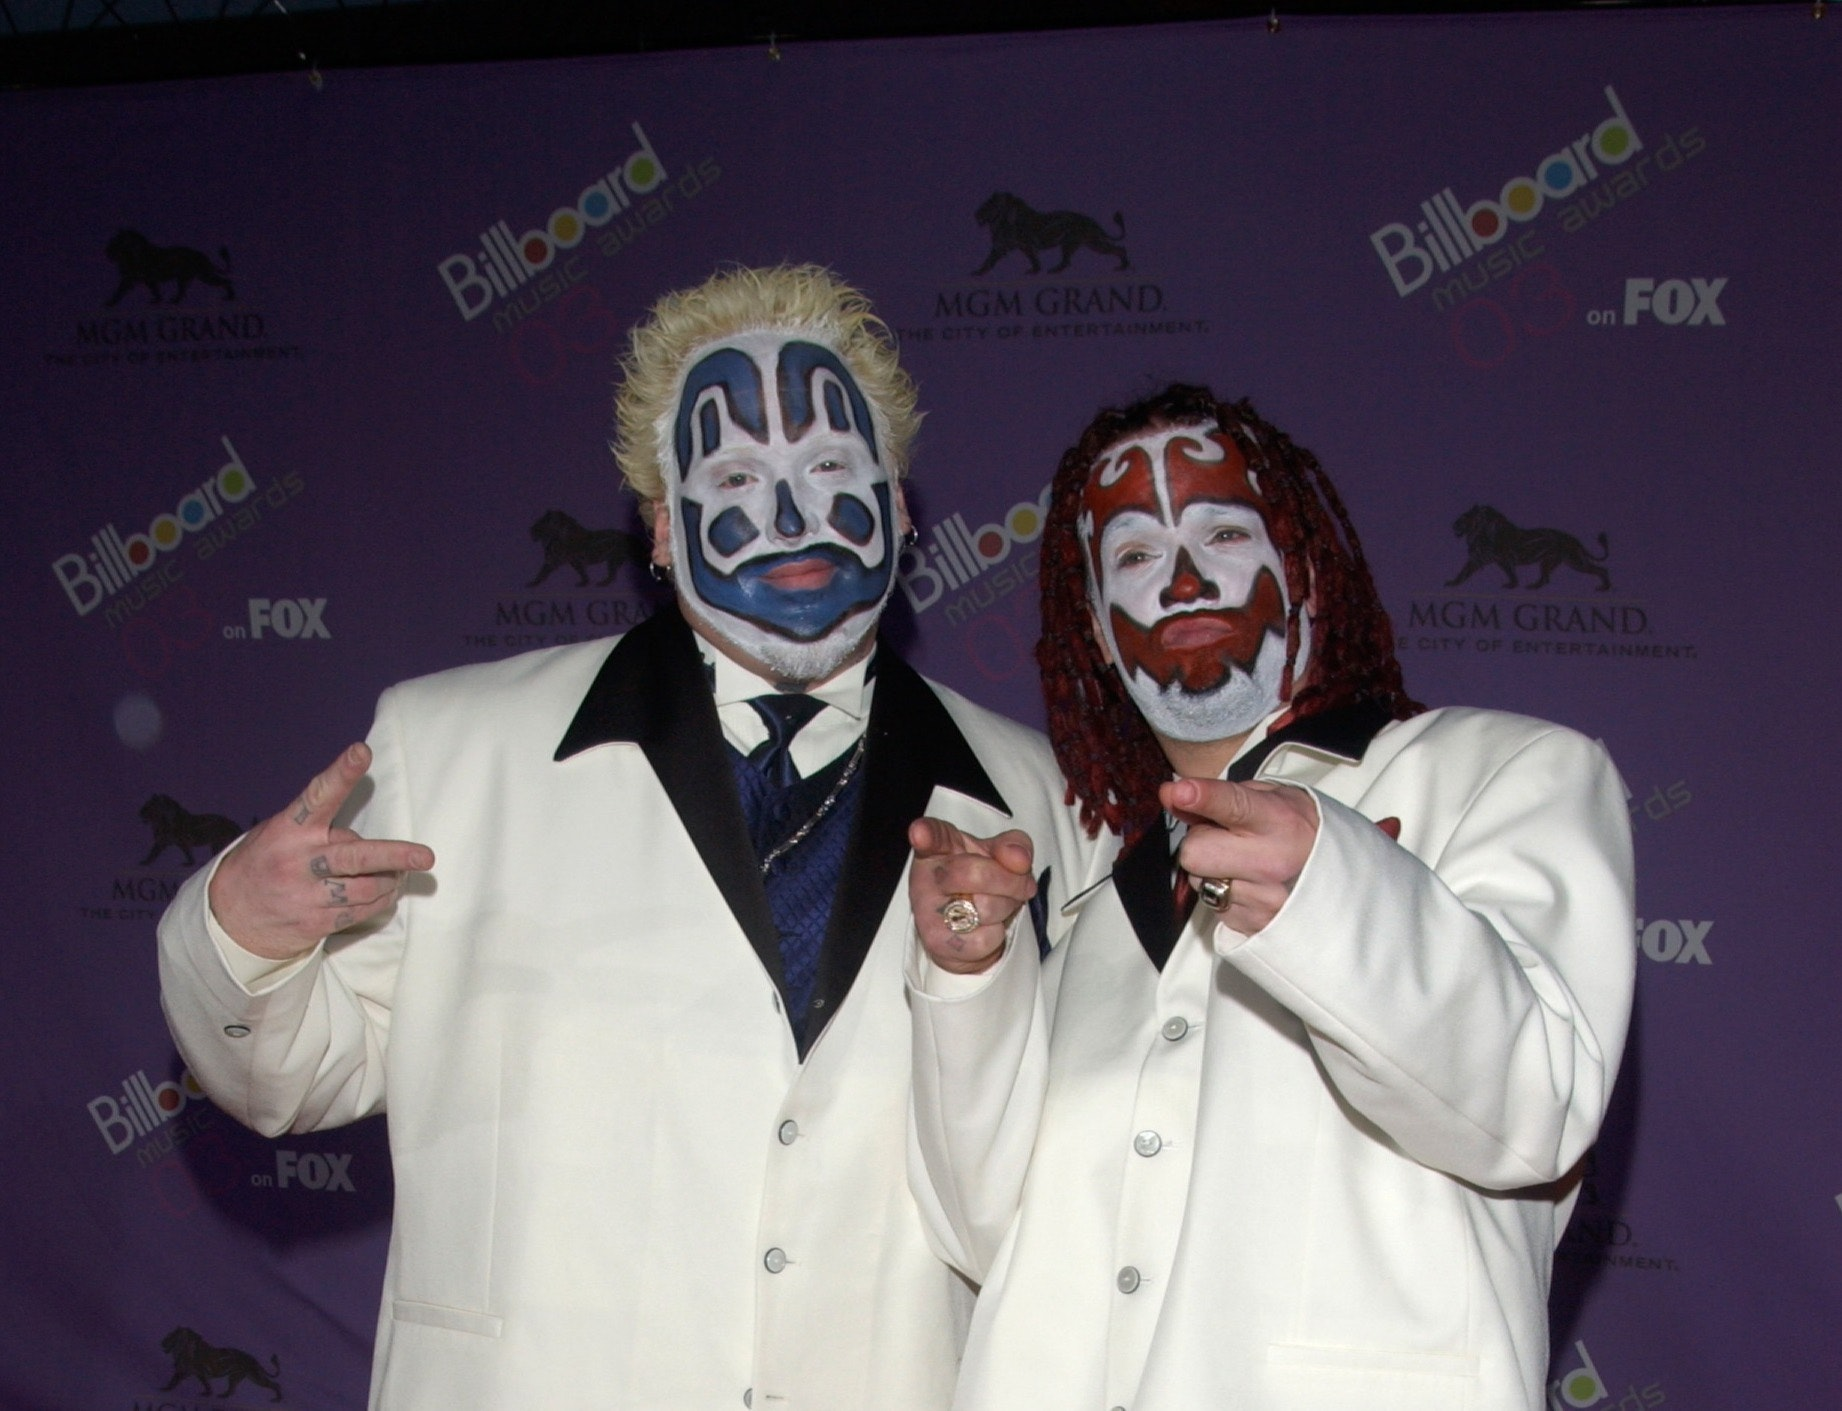 Insane Clown Posse is an American institution